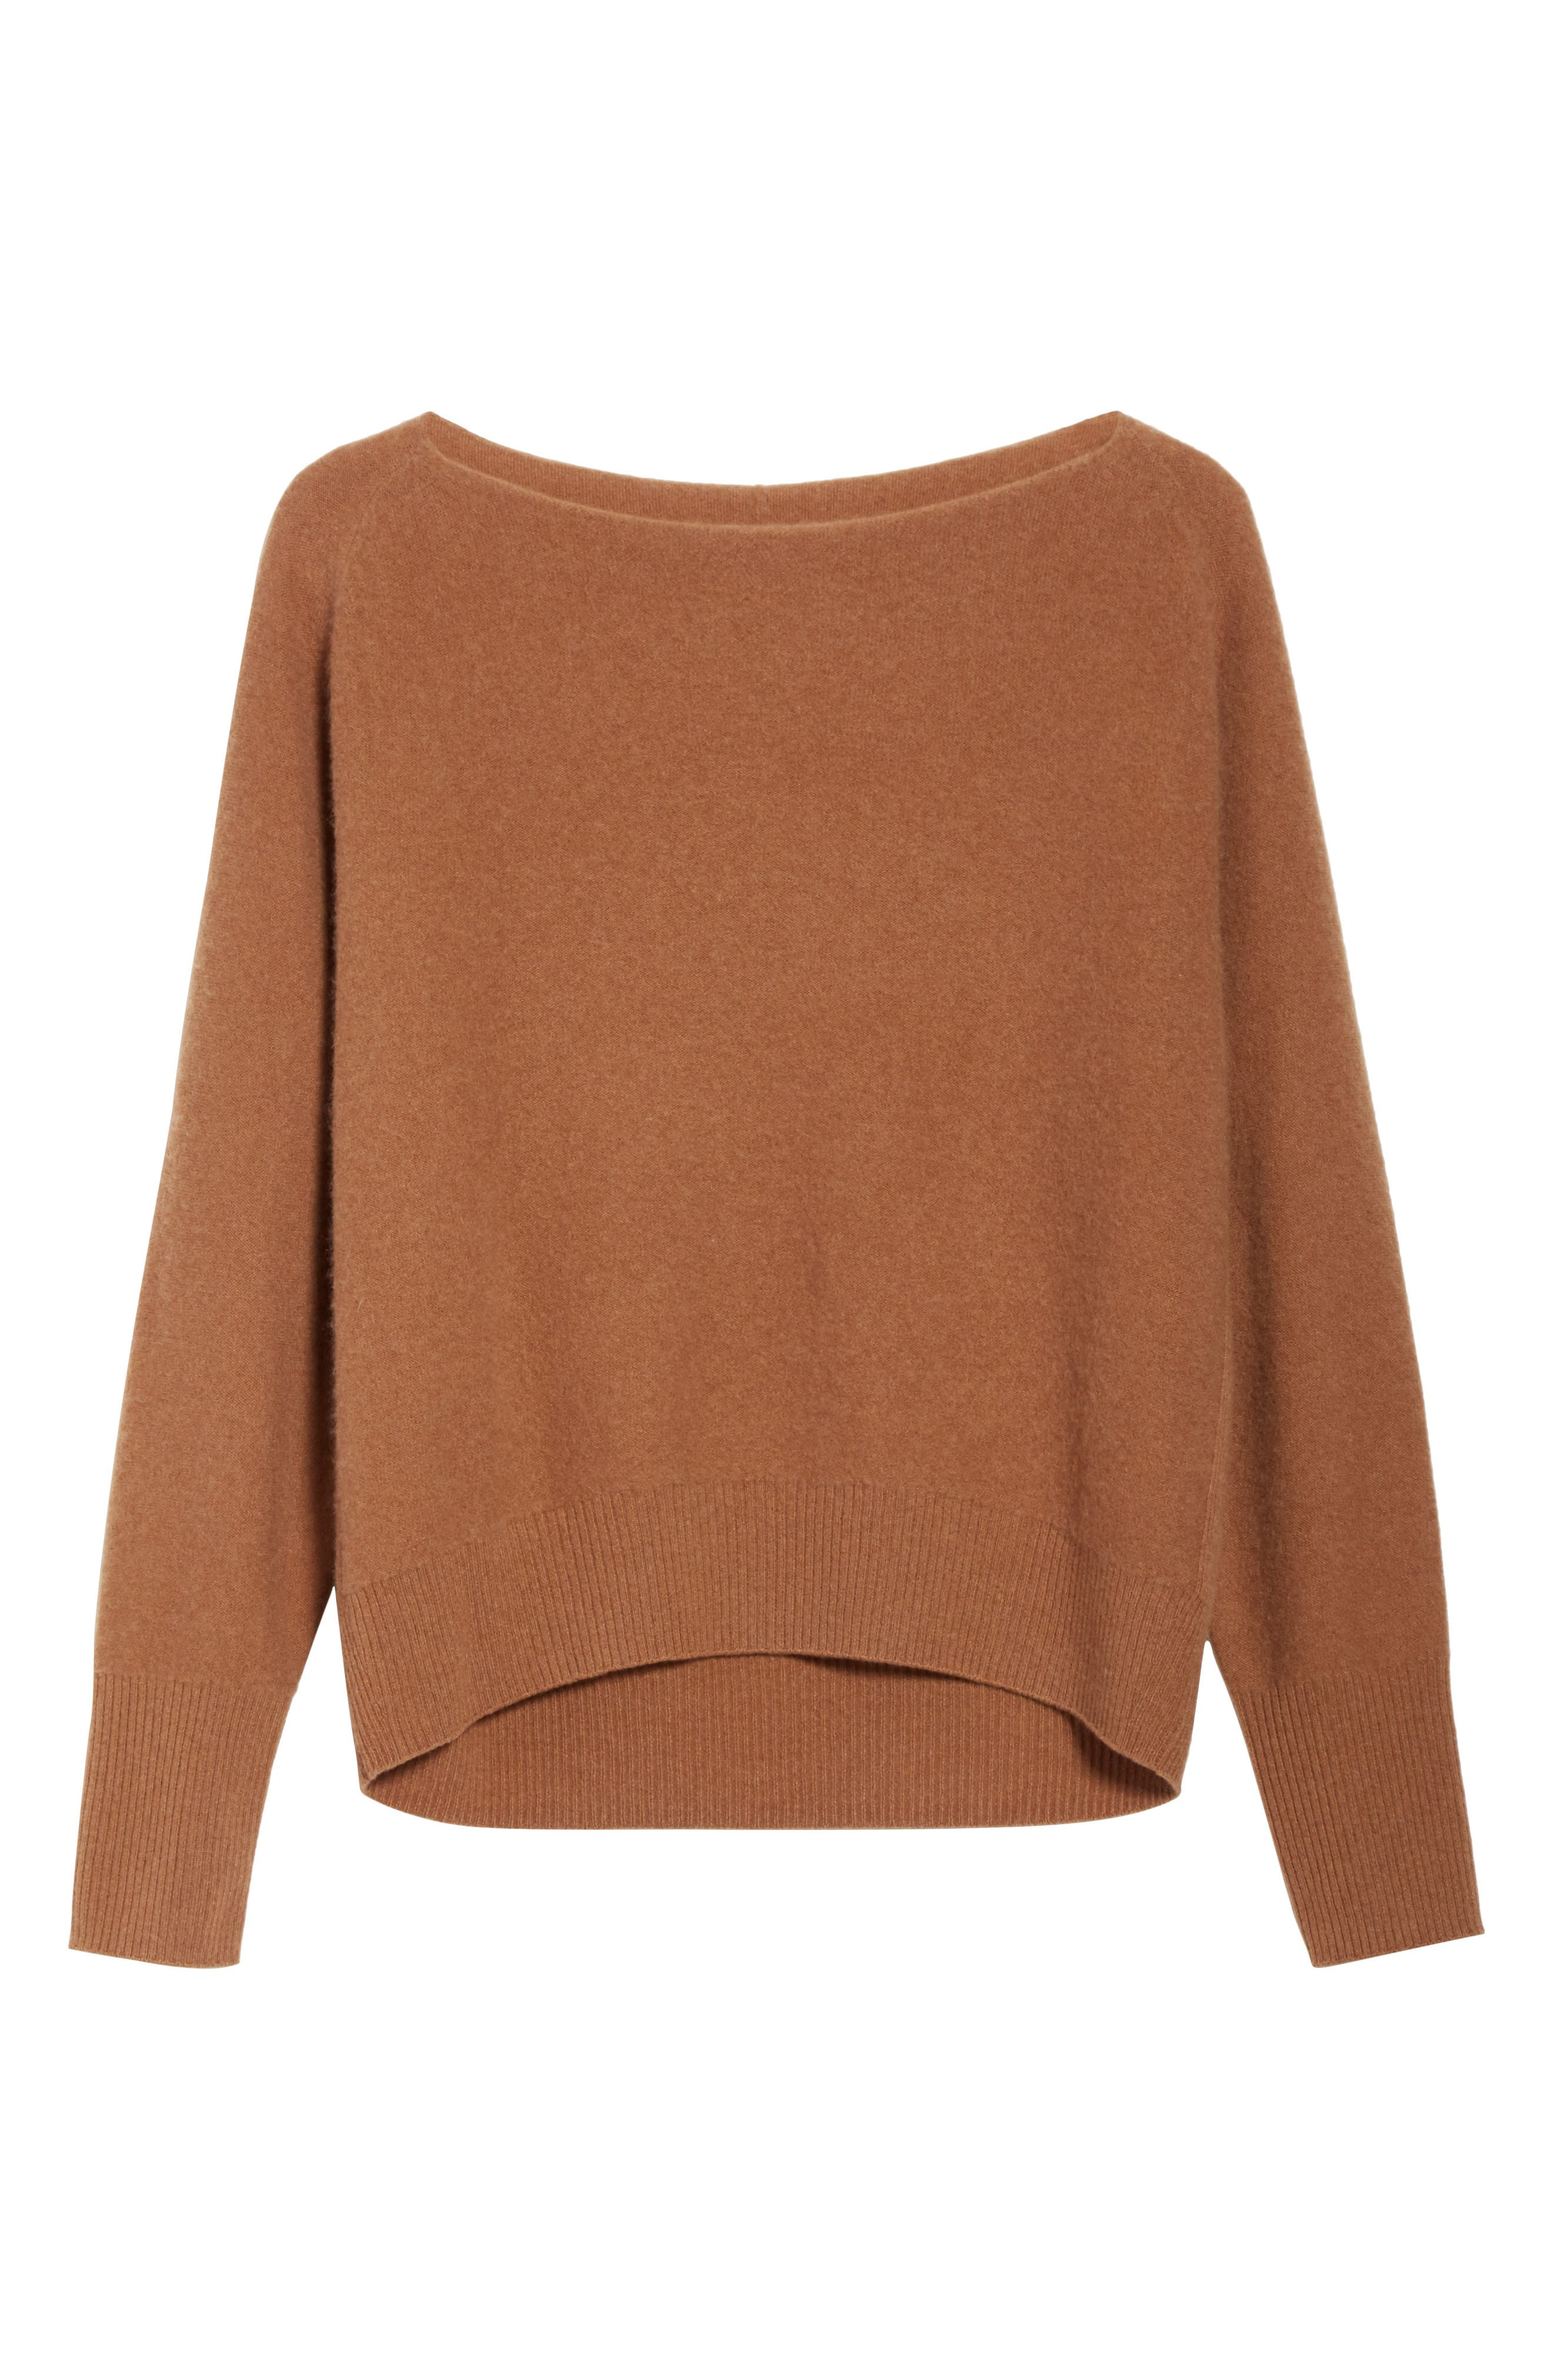 Boat Neck Cashmere Pullover,                             Alternate thumbnail 6, color,                             850